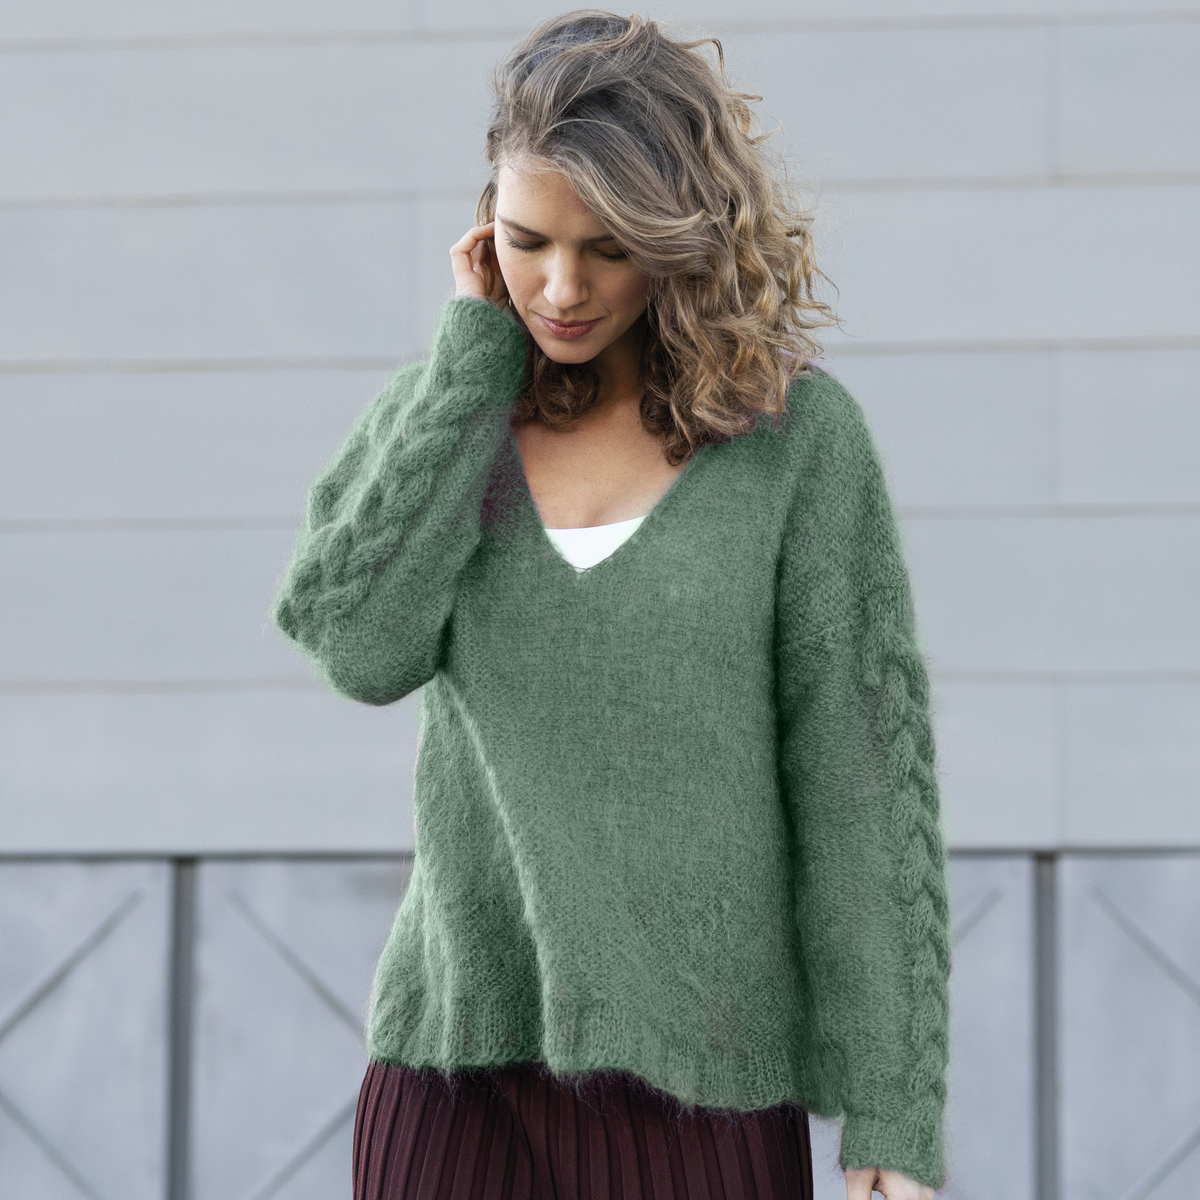 Knit a V-neck jumper with a cable pattern